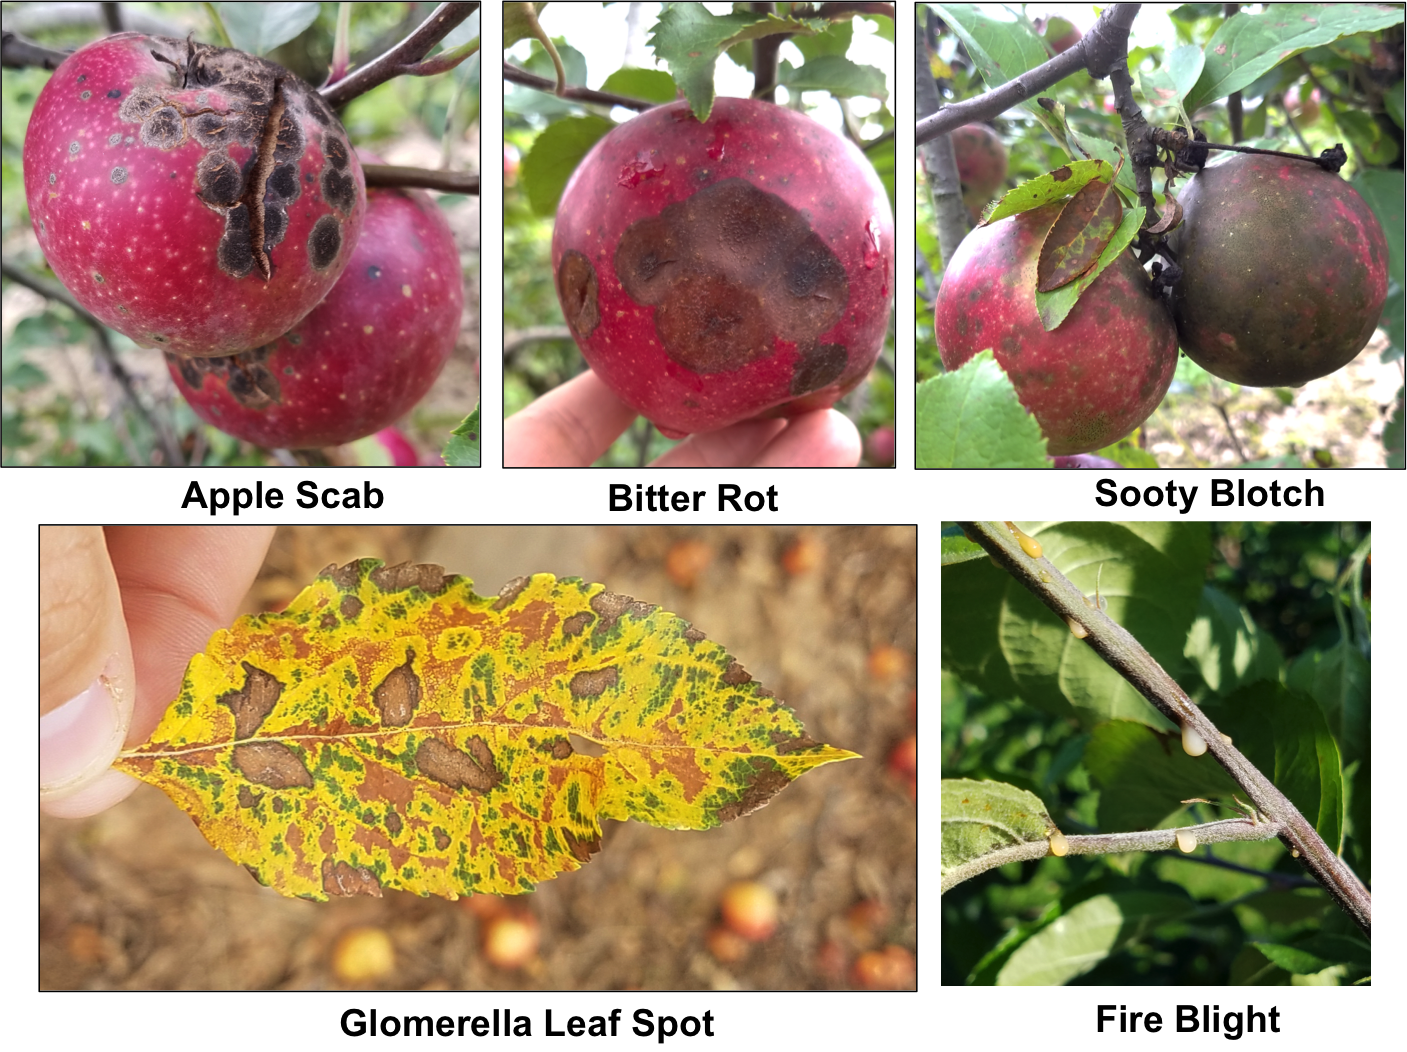 Five photos showing apple diseases Top (left to right) Apple Scab, Bitter Rot, Sooty Blotch. Bottom (left to right) Glomerella Leaf Spot, Fire Blight